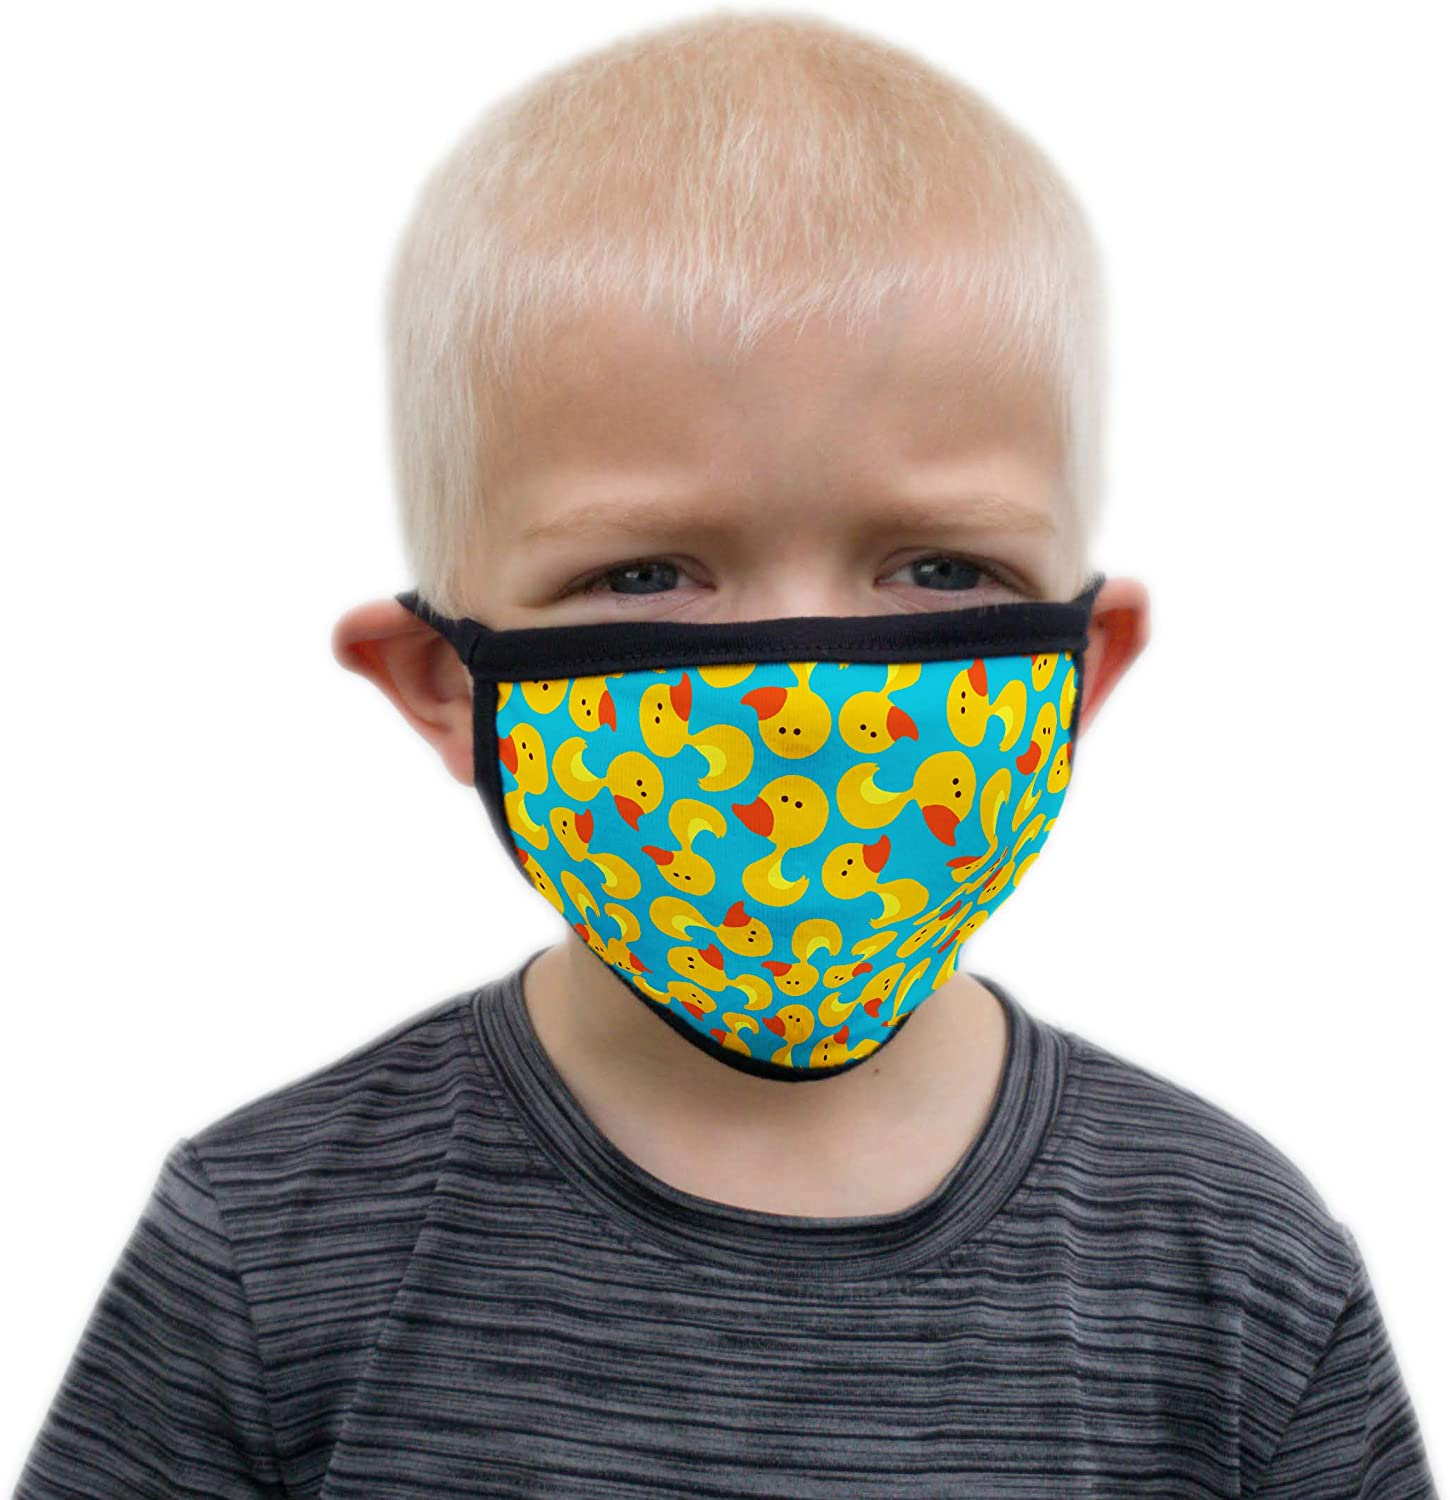 Buttonsmith Rubber Ducks Child Face Mask with Filter Pocket - Quantity 1 - for Ages 3-5 - Fade and Bleed Proof Design - Two Layer Soft US-Made Material - Washable - Made in The USA